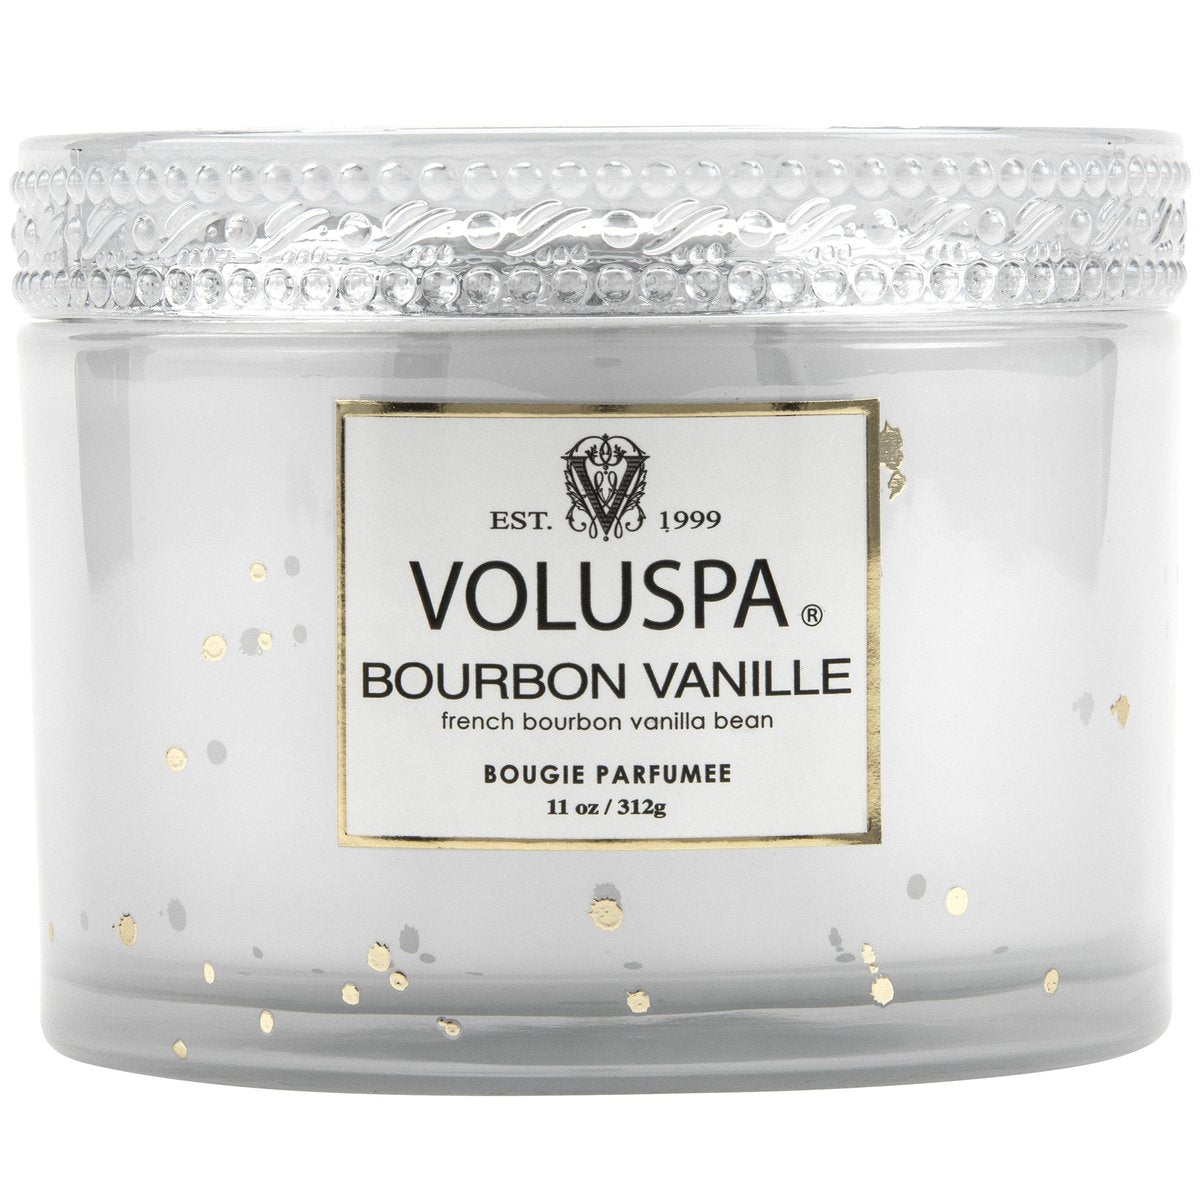 Bourbon Vanilla 11oz Corta Maison Glass Candle with Lid Box